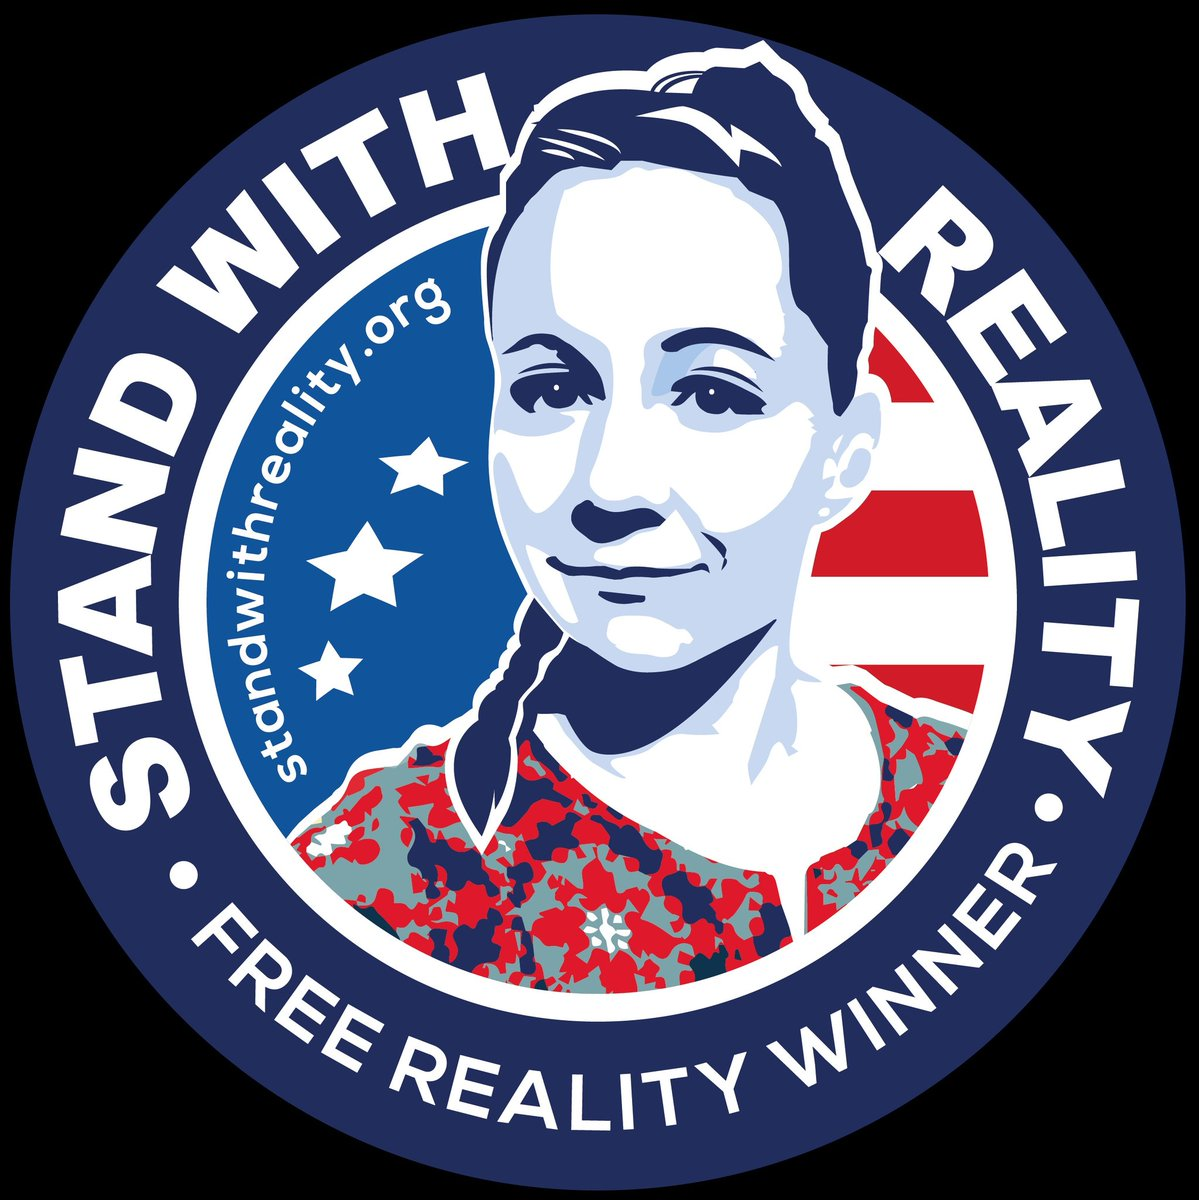 @JoeBiden Please bring my daughter #RealityWinner back home!  She has already spent over 41 months in prison for an act to warn and protect us against foriegn election interference.  You must #FreeRealityWinner